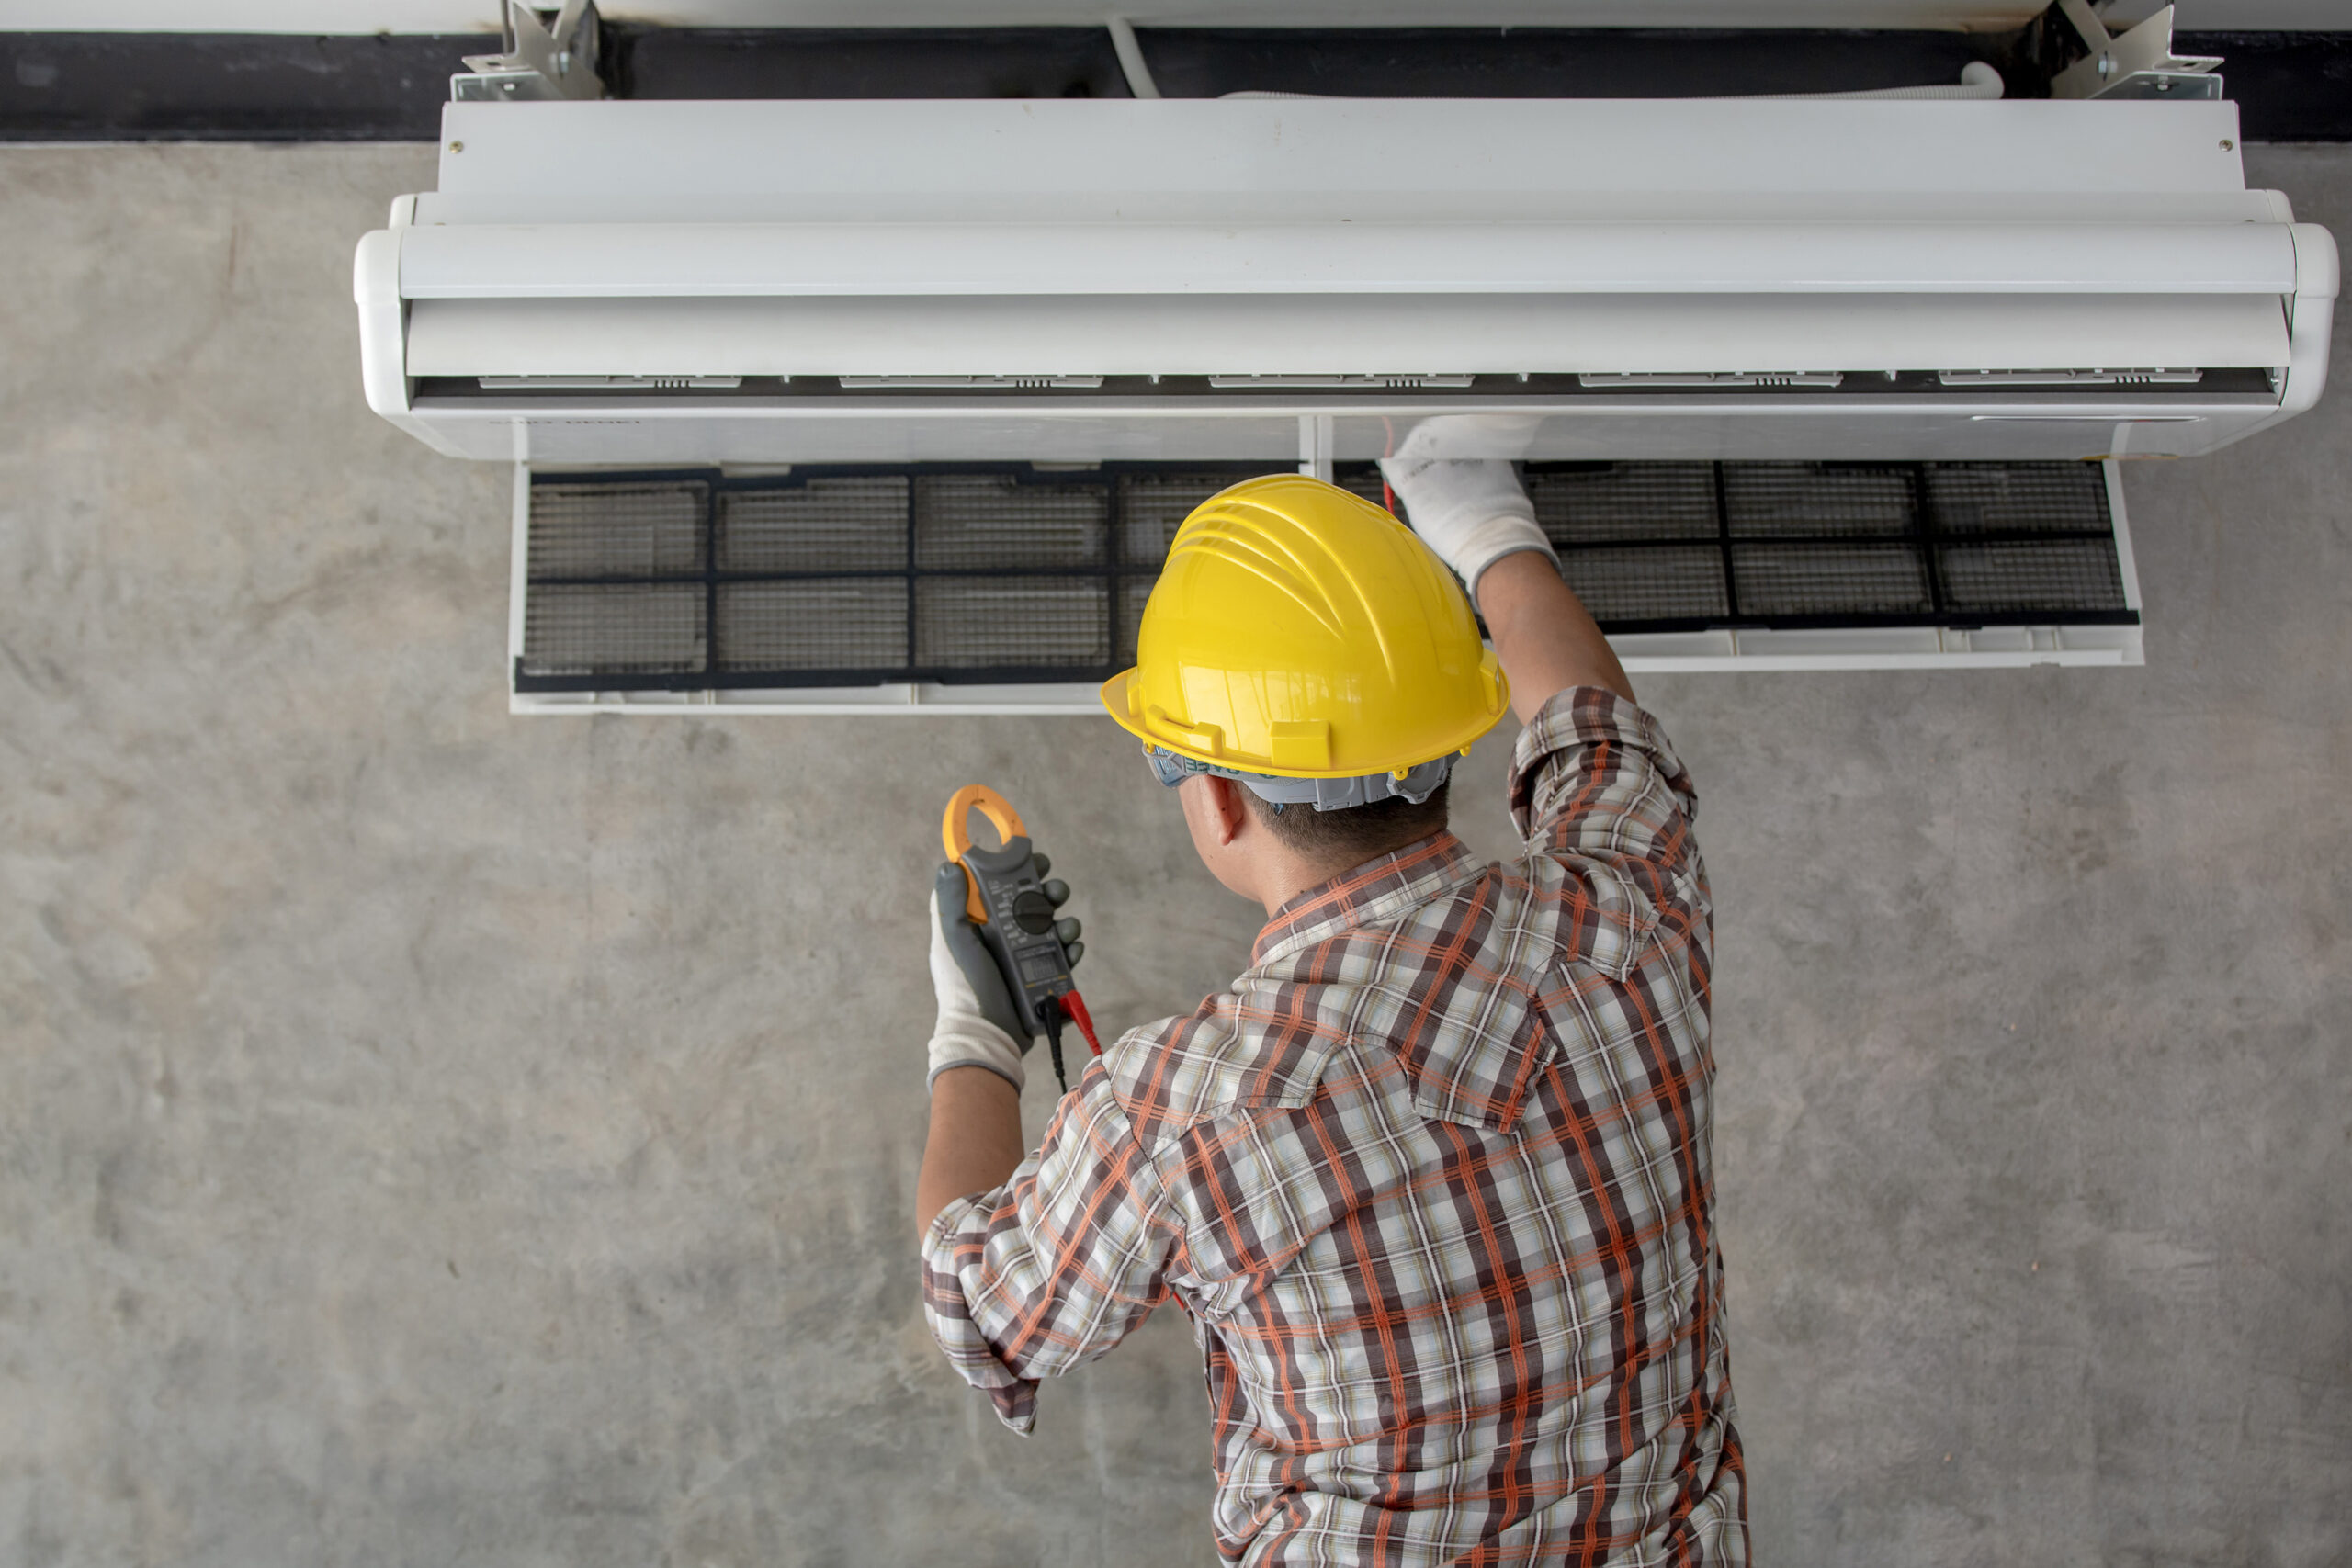 A technician in process of inspecting and maintaining an hvac ductless system.